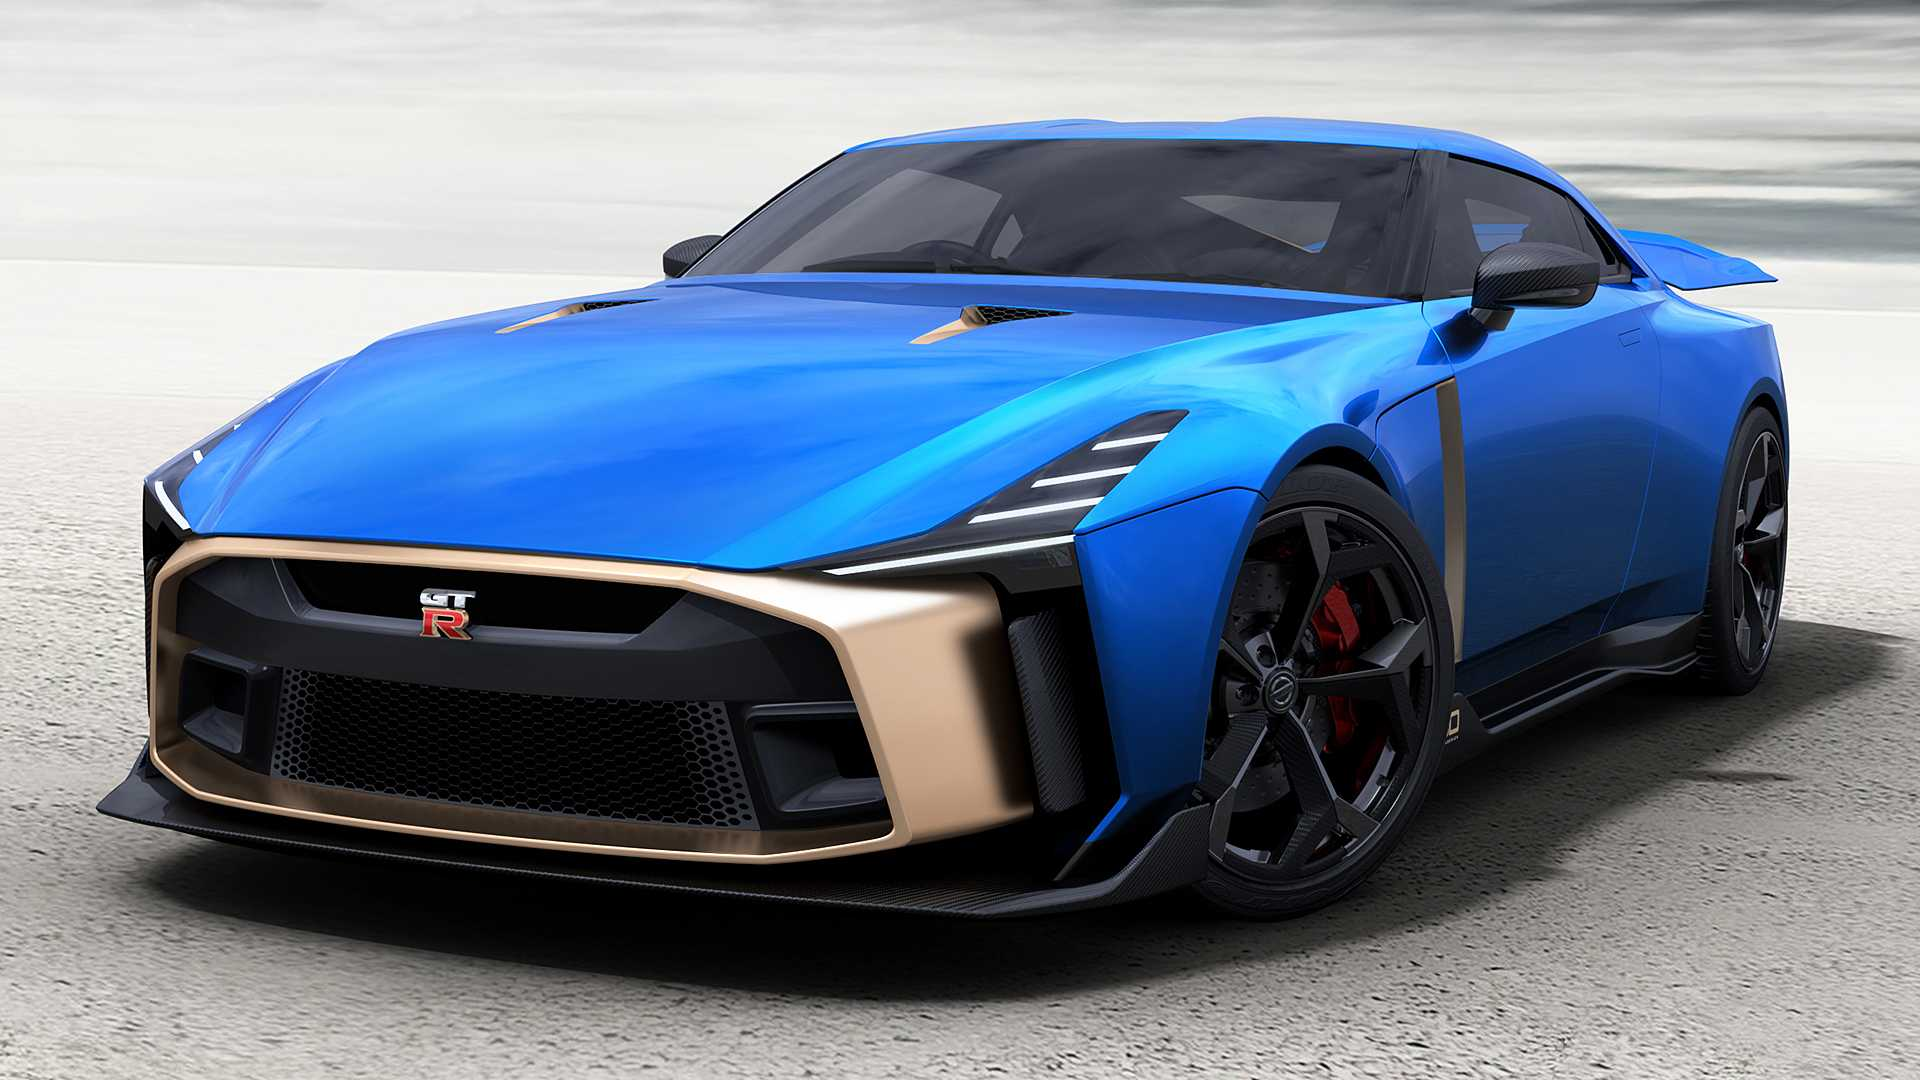 16 Concept of Nissan Gtr 2020 Price Redesign and Concept with Nissan Gtr 2020 Price